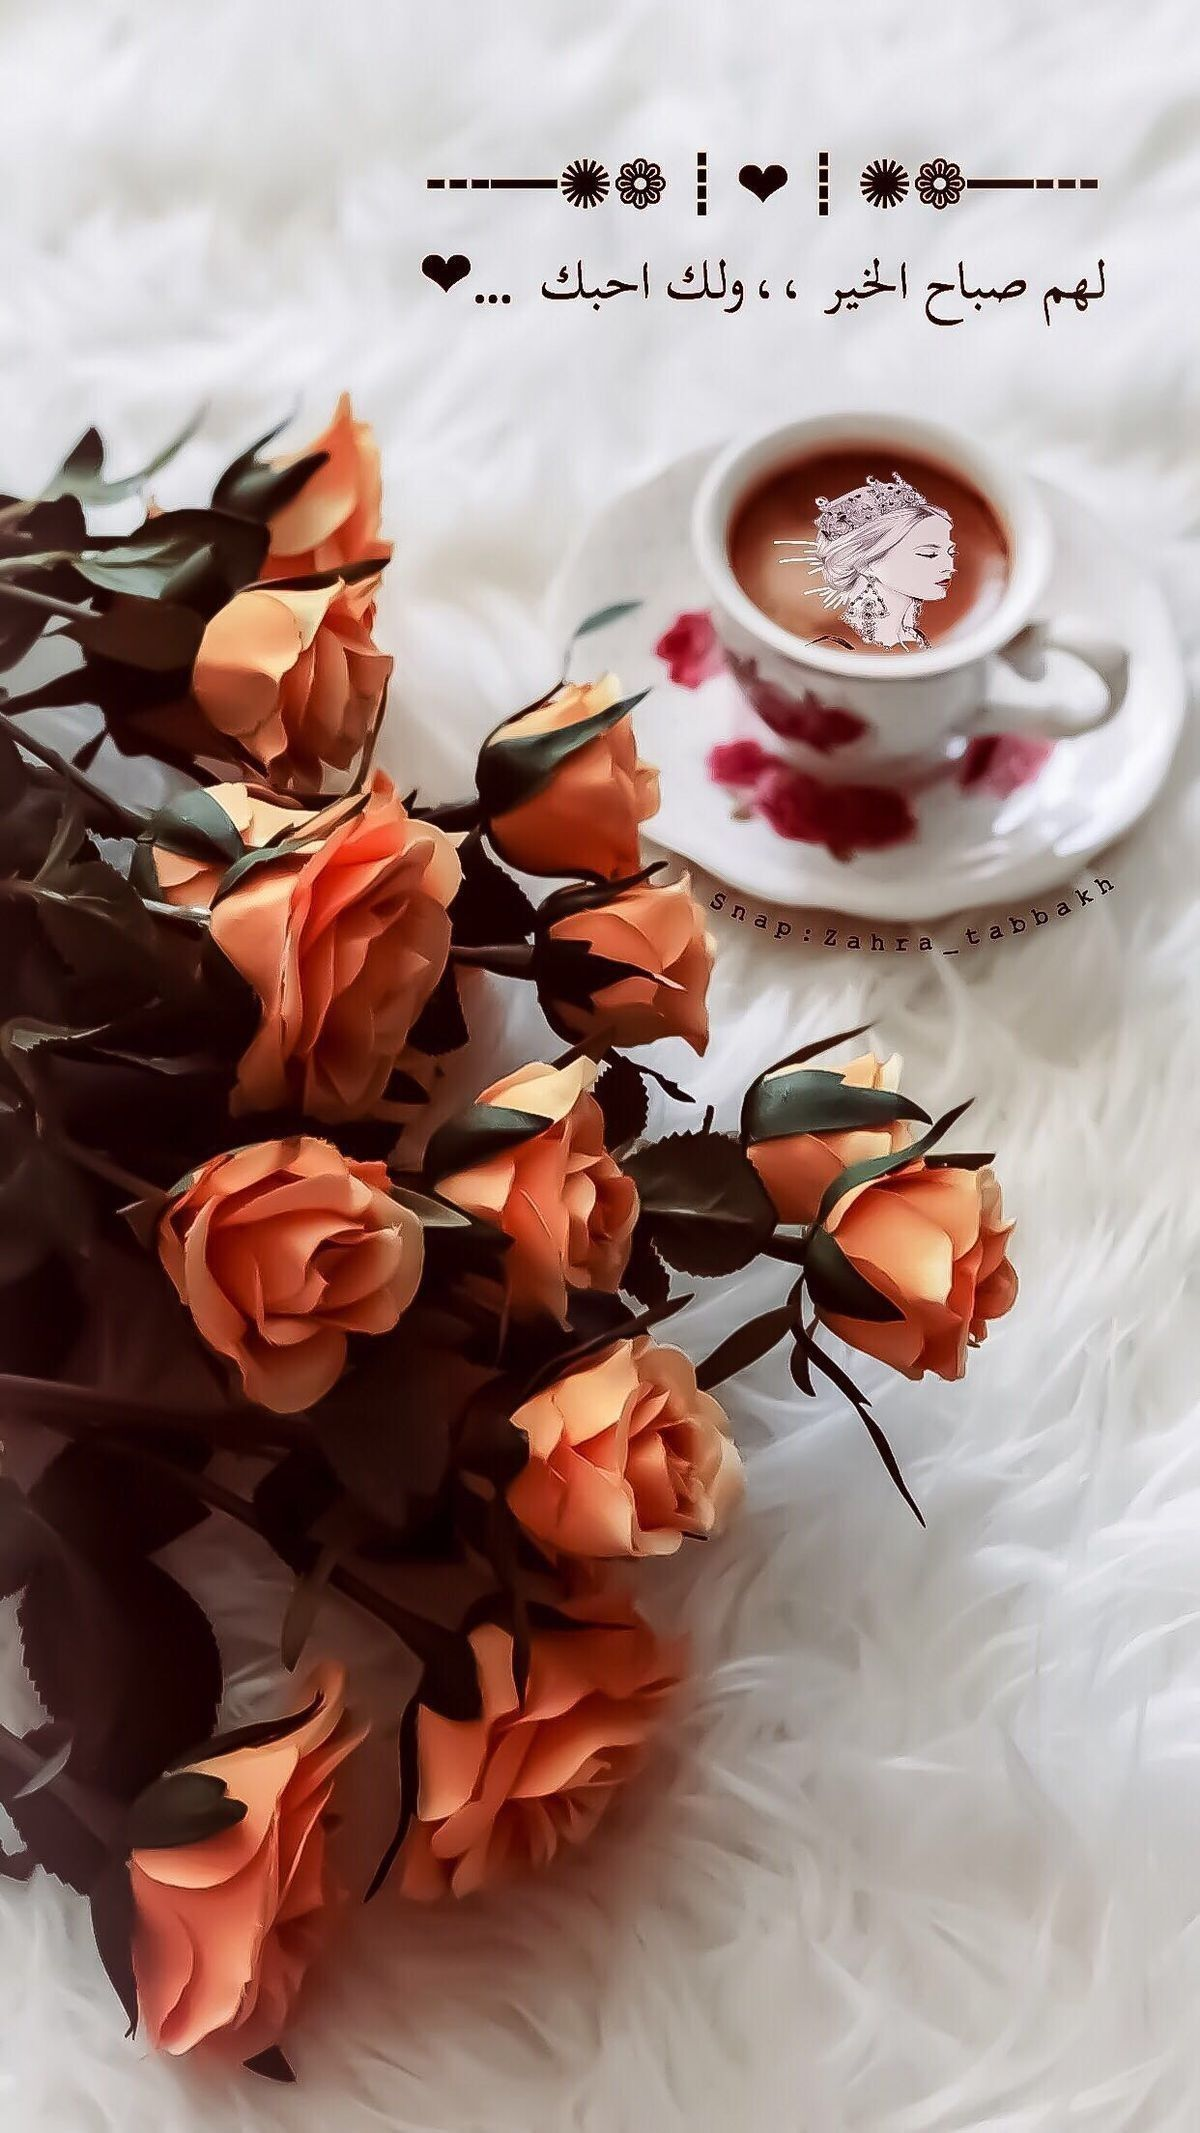 Pin By يـ ـسـ ـآر On My Coffee قهوتي Morning Love Quotes Iphone Wallpaper Quotes Love Good Morning My Love